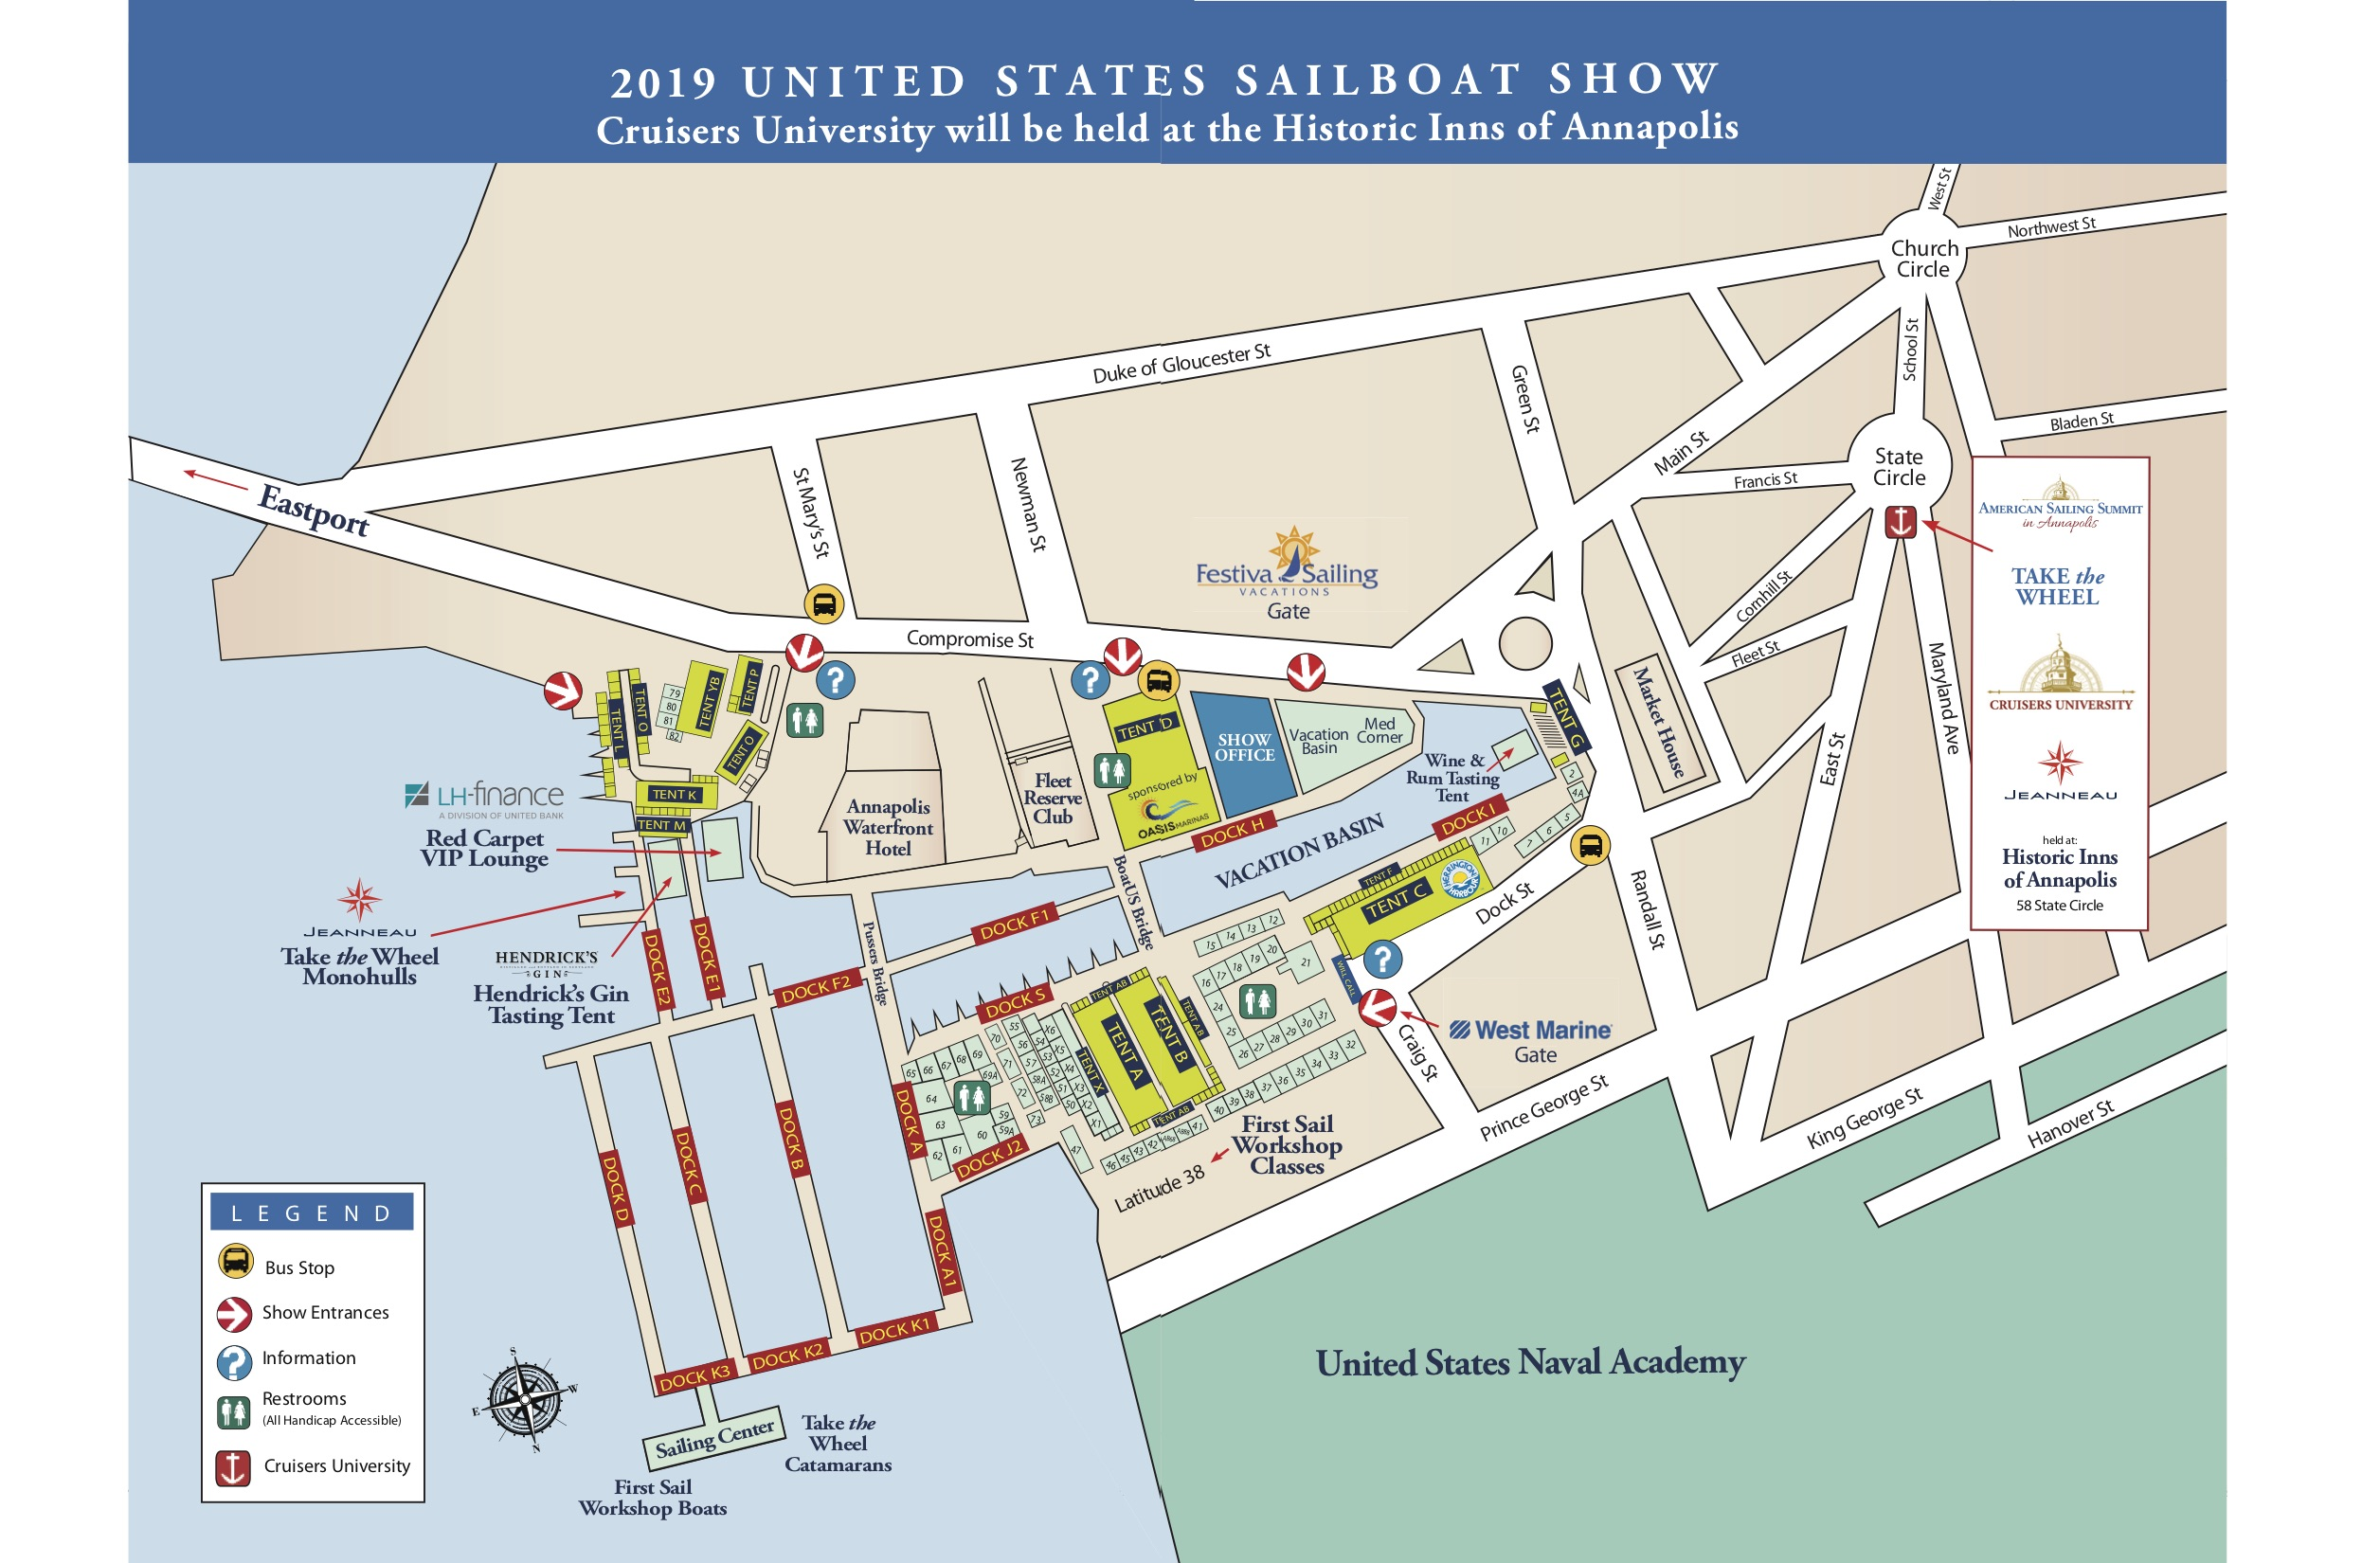 United Sailboat Show | Show Layout on show me map of iowa, show me map of ghana, show me map of nigeria, show me map of jamaica, show me map of niagara falls, show me map of south carolina, show me map of bulgaria, show me map of belize, show me map of atlantic ocean, show me map of south america, show me map of time zones, show me map of switzerland, show me map of mexico, show me map of japan, show me map of croatia, show me map of nepal, show me map of south africa, show me map of the caribbean, show me map of venezuela, show me map of bermuda,